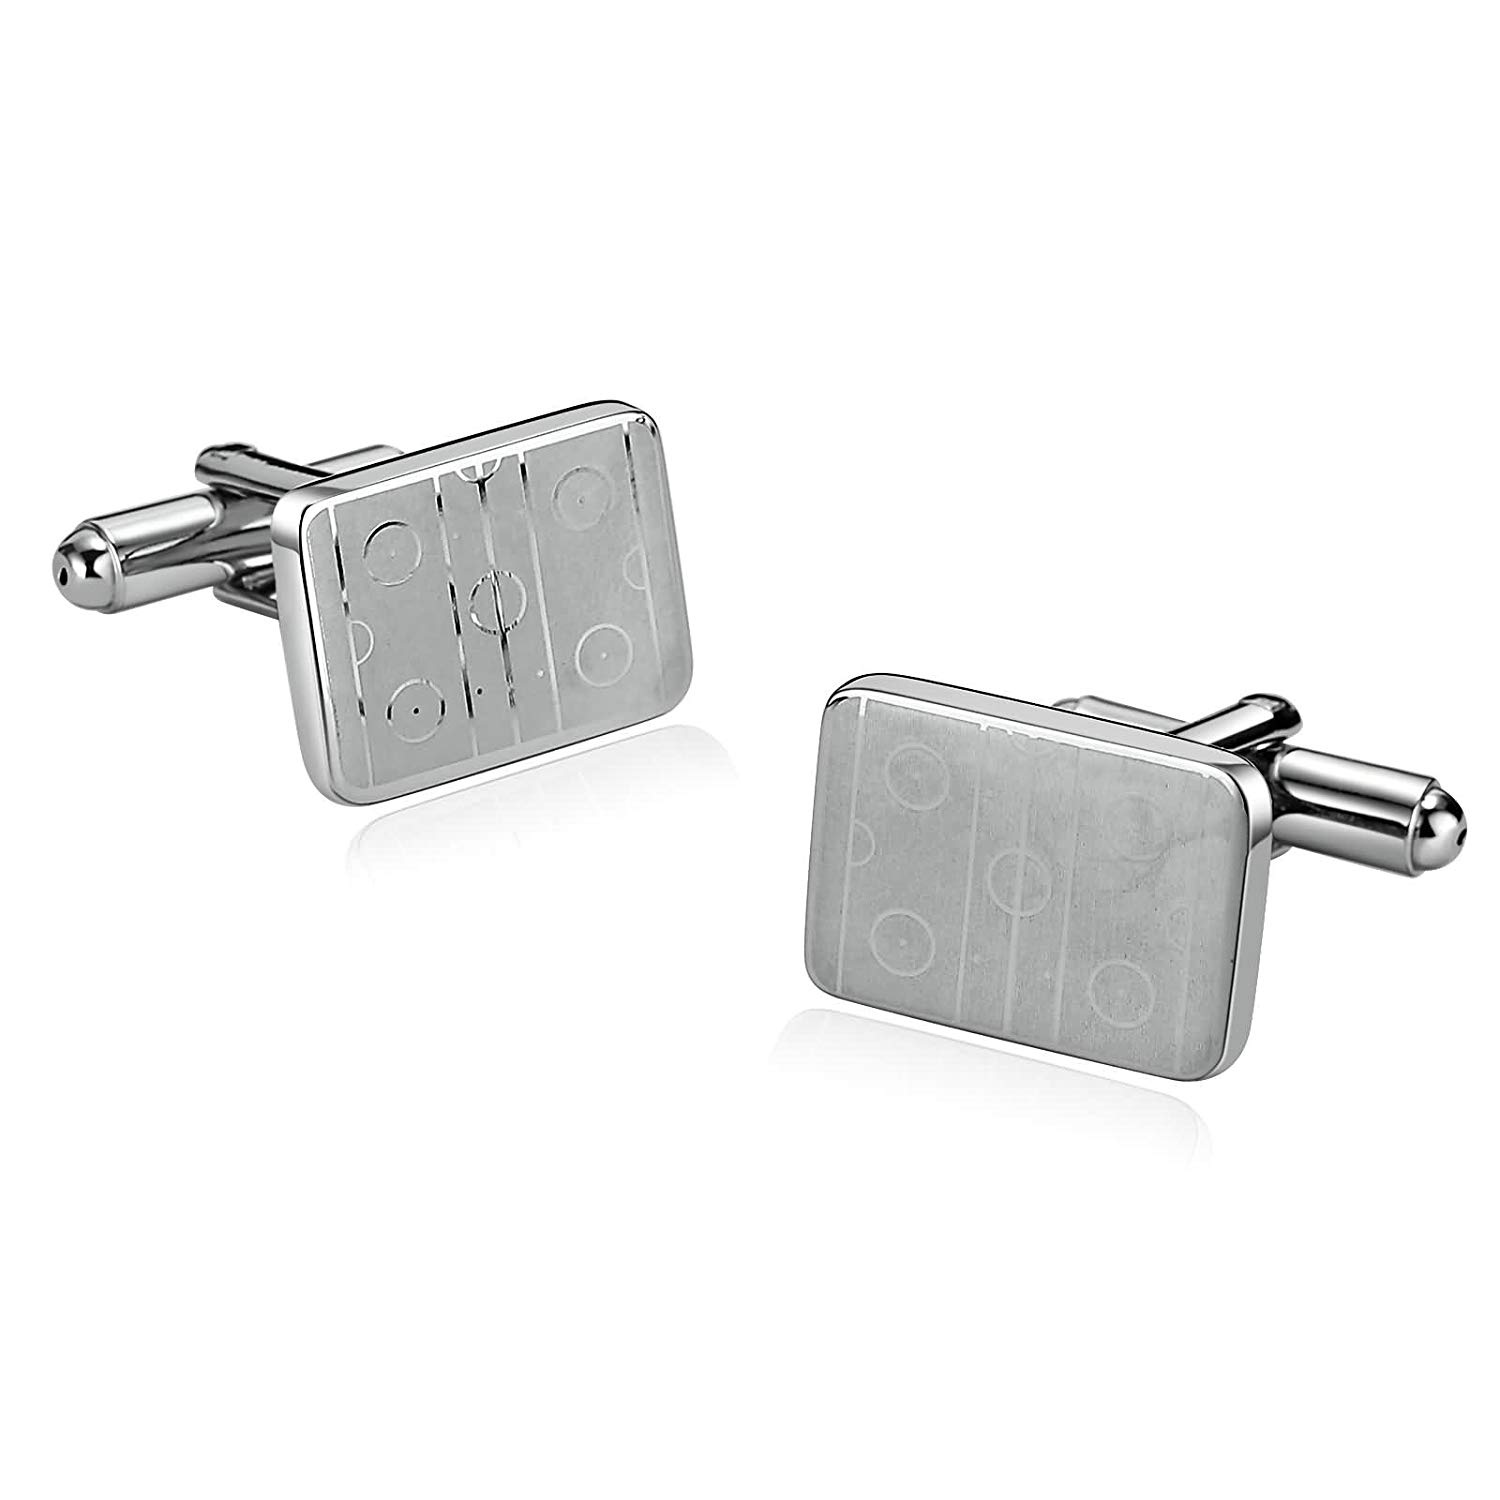 5 Styles Mens Stainless Steel Cufflinks 2Pcs, Novelty Cufflinks, Dad Unique Jewelry Box Charm Aooaz Mh97